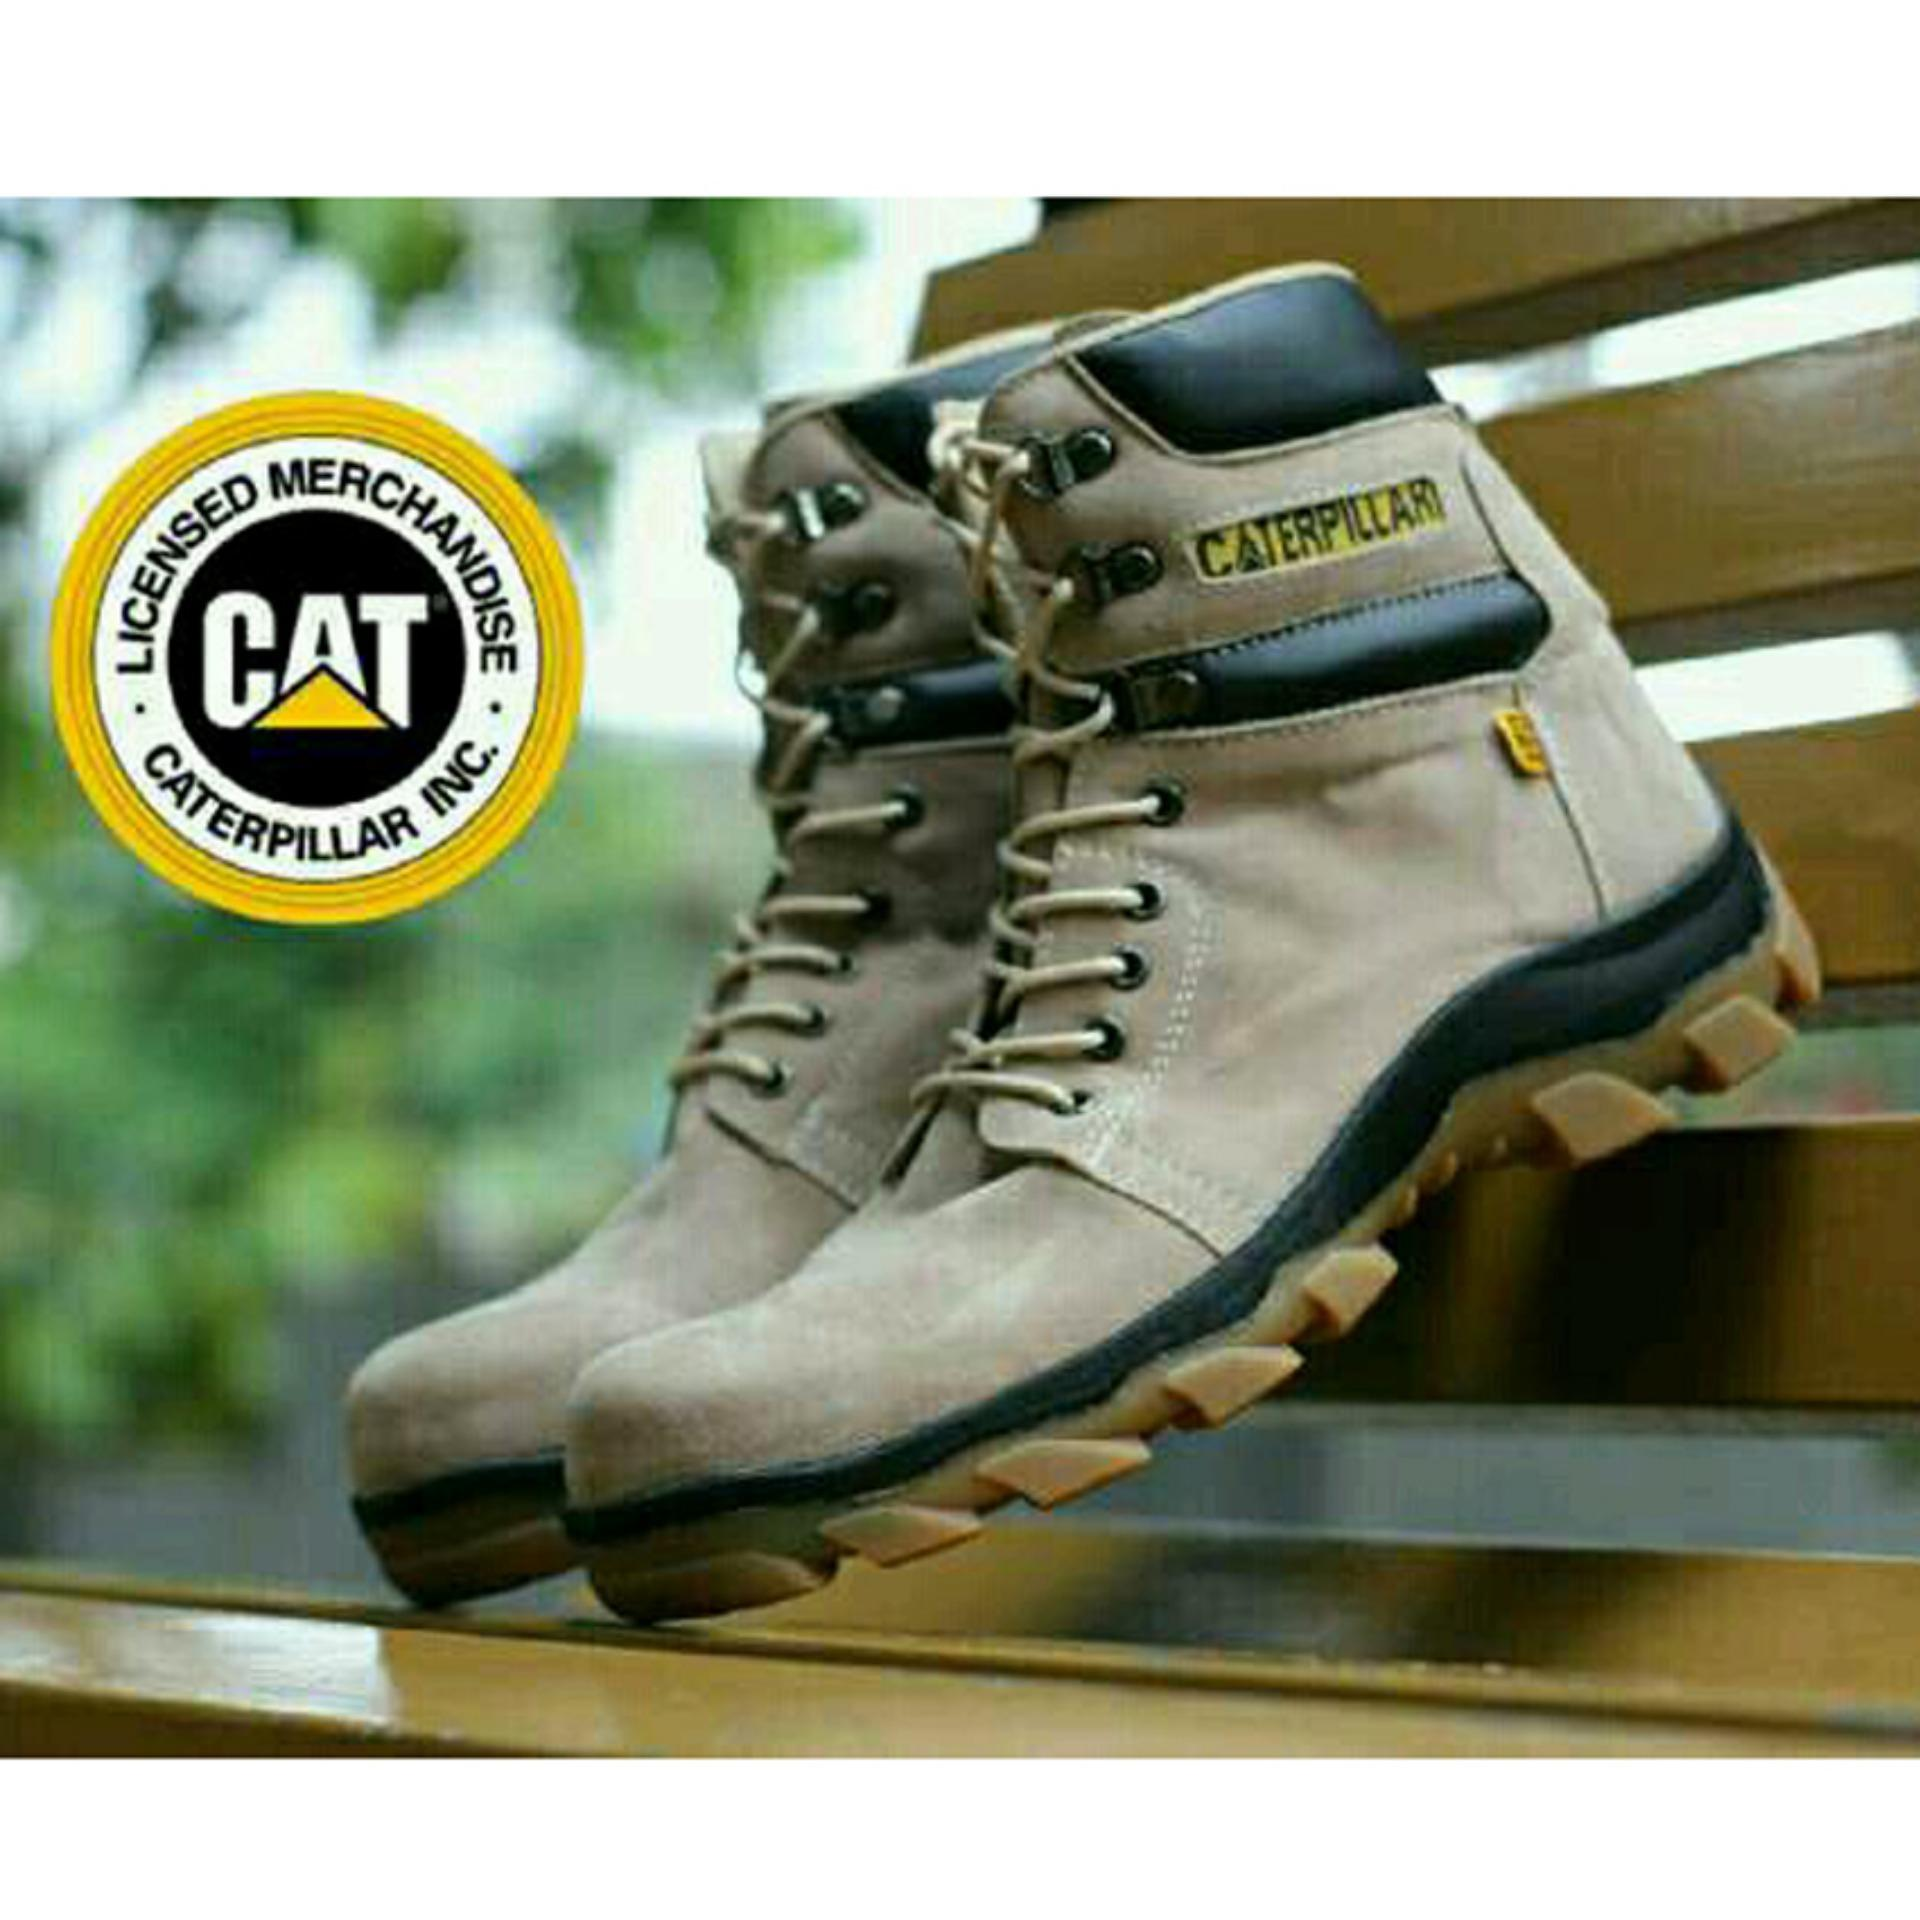 Jual Sepatu Kickers Caterpillar Woods Safety Boots Suede Leather Low Broken White Harga Rp 275000